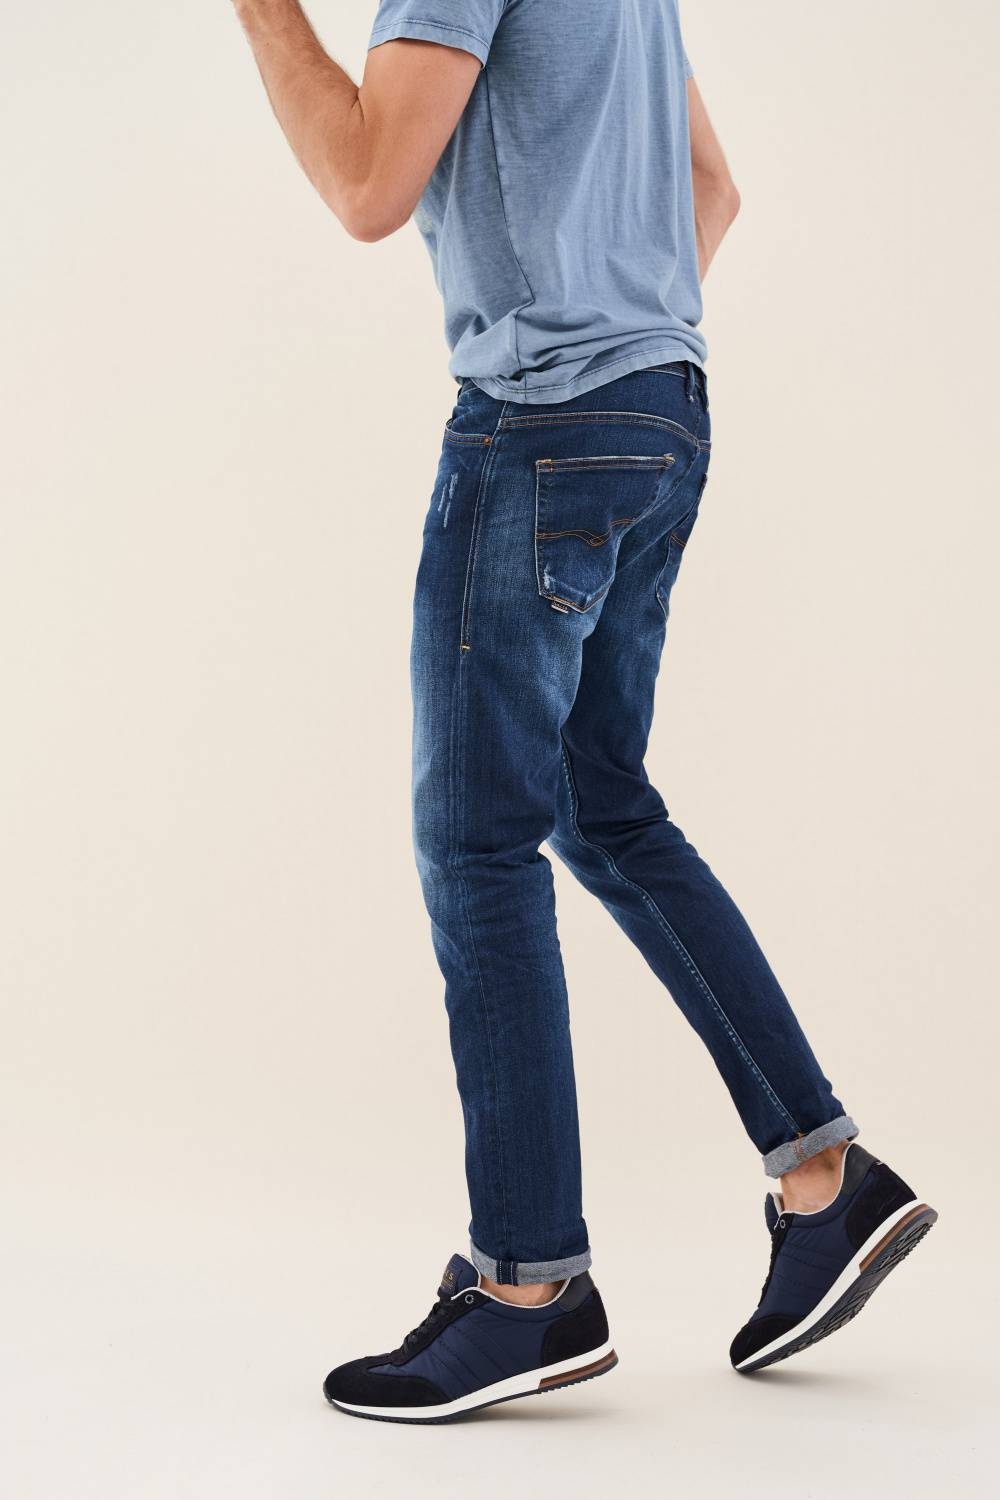 Jeans Slender, Slim Fit, Carrot, Premium Waschung - Salsa